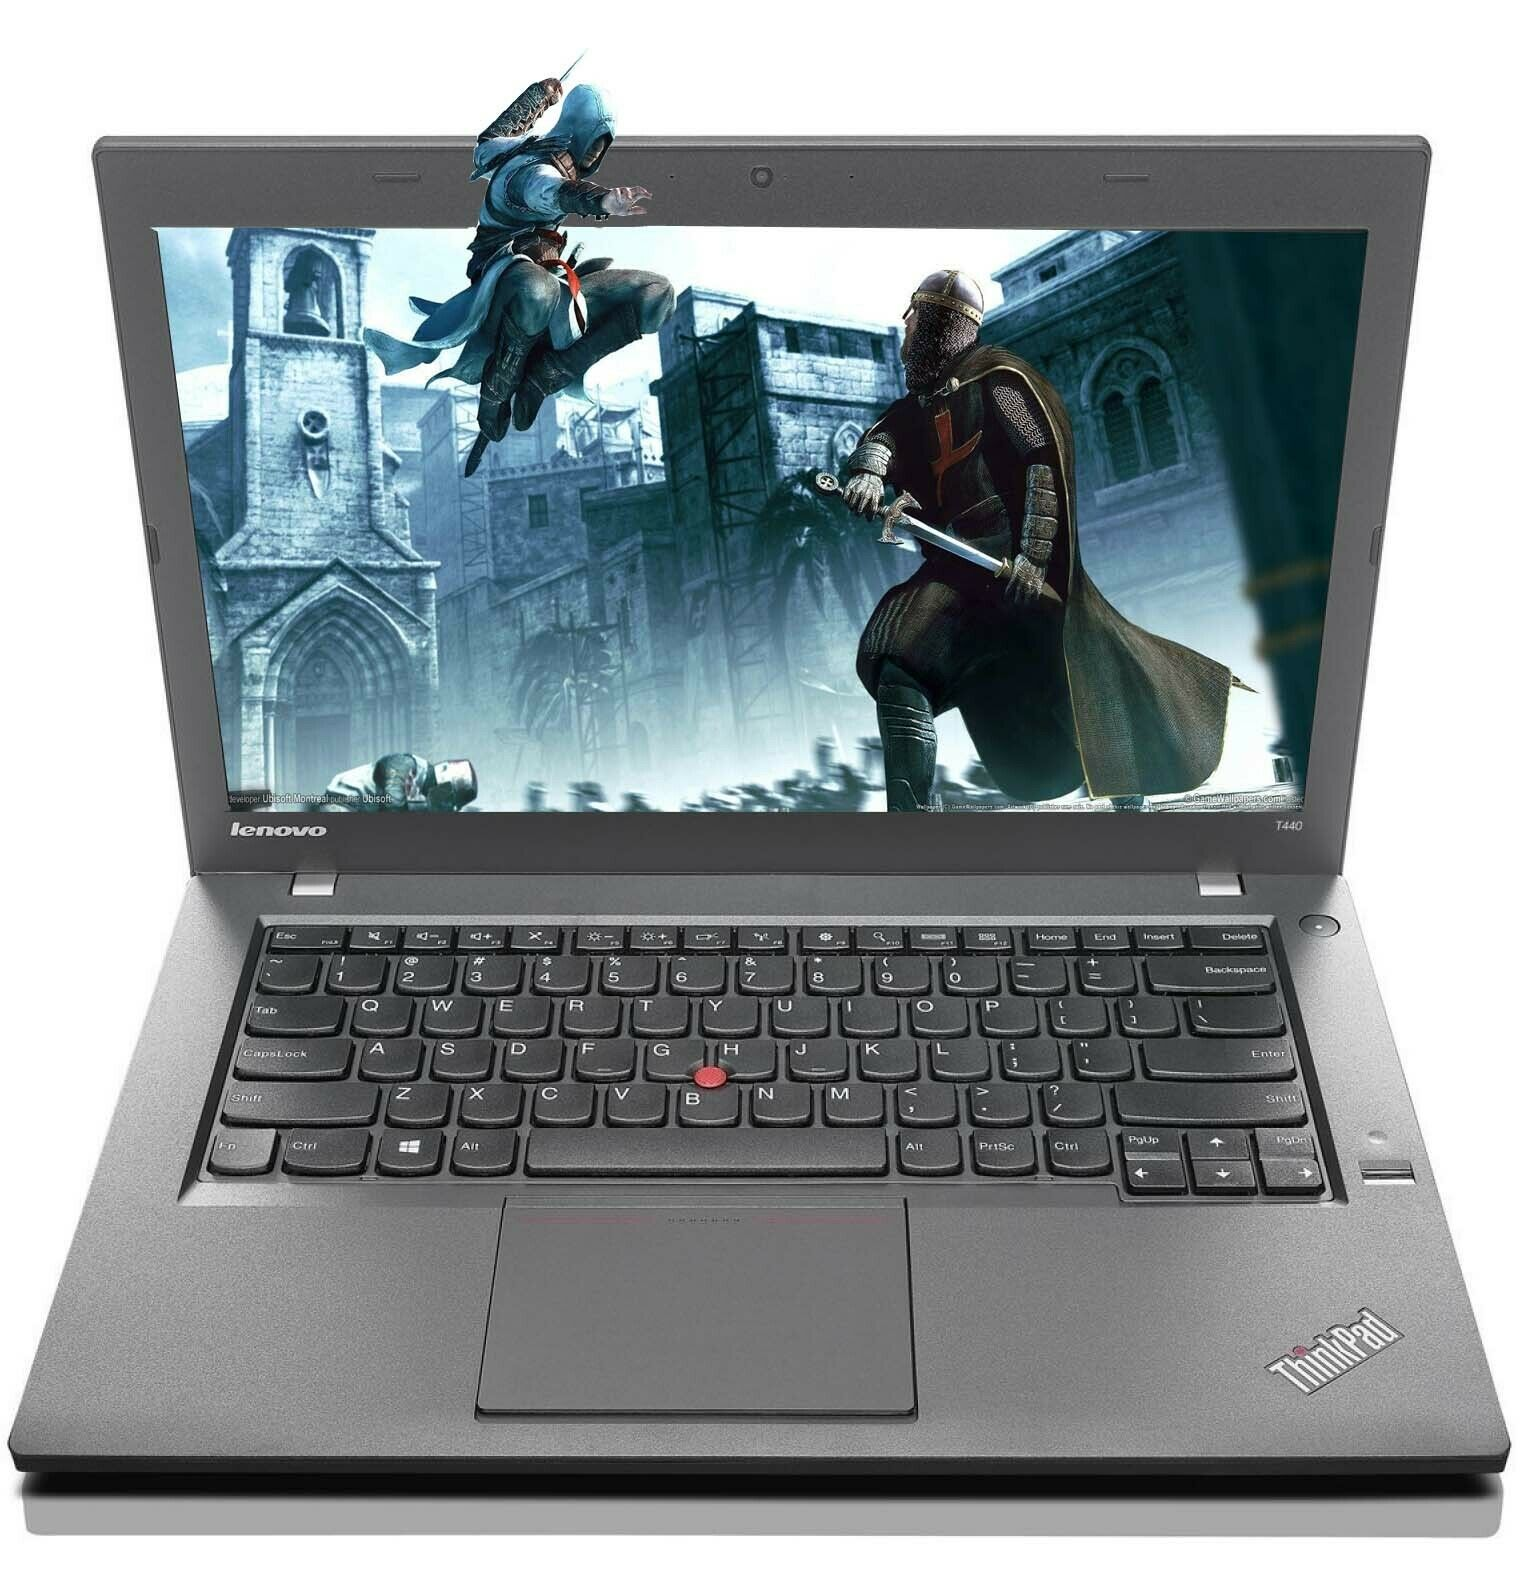 "Laptop Windows - Cheap Gaming Laptop Lenovo T440 i5 2.9Ghz 500GB SSD 8GB 14.1"" HD Windows 10"